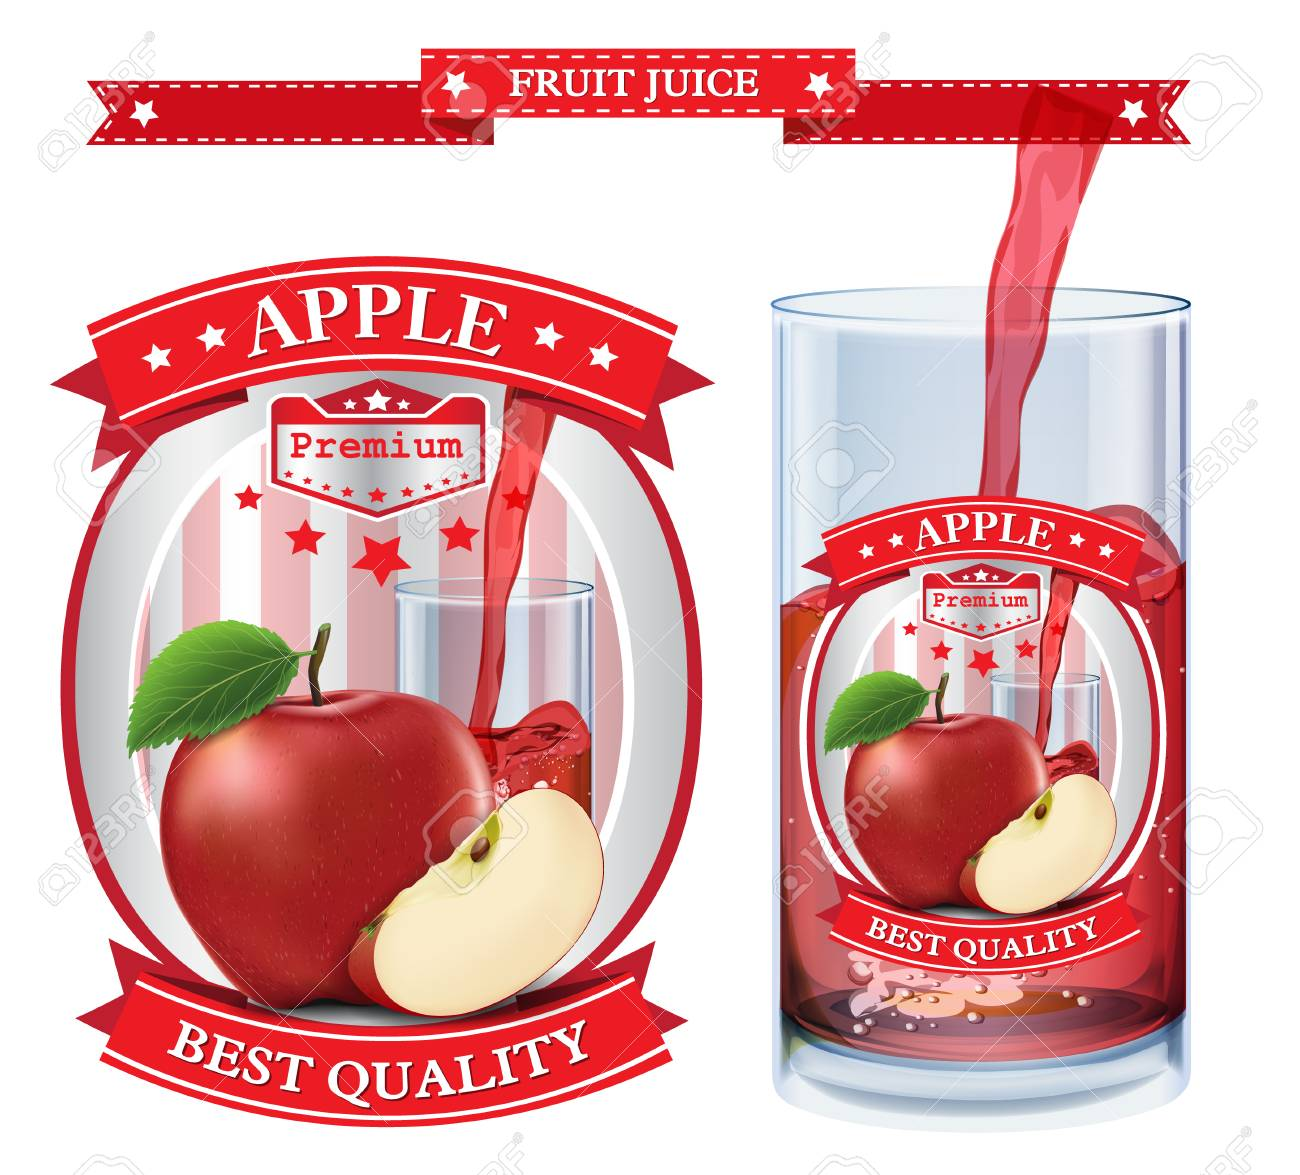 Apple juice Label vector visual, ideal for fruit juice  Drawn